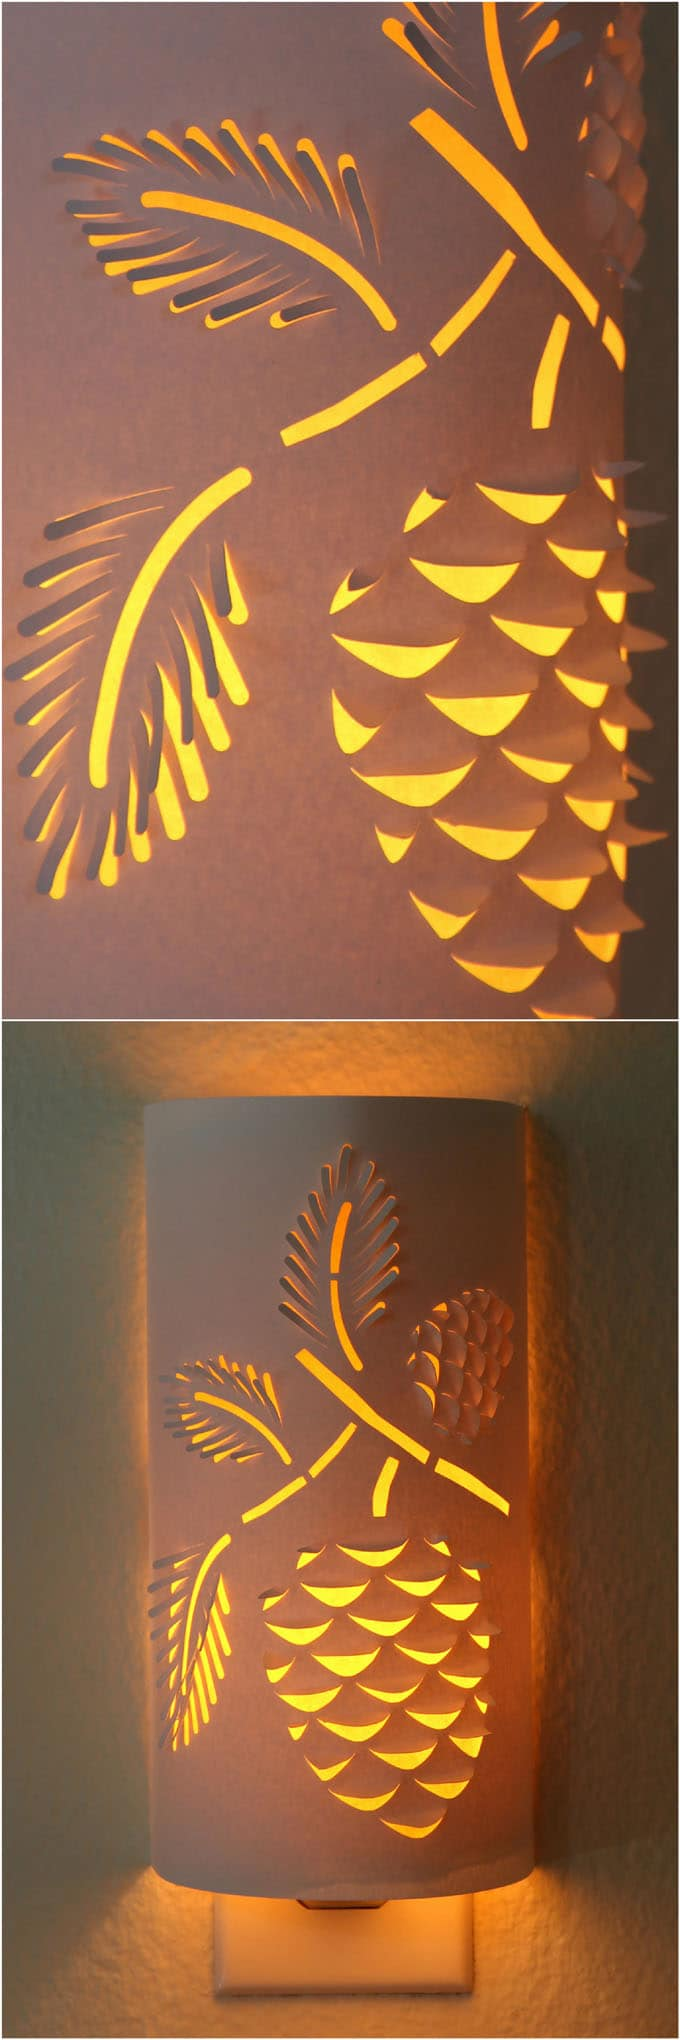 DIY Paper Night Light with pine cone design details